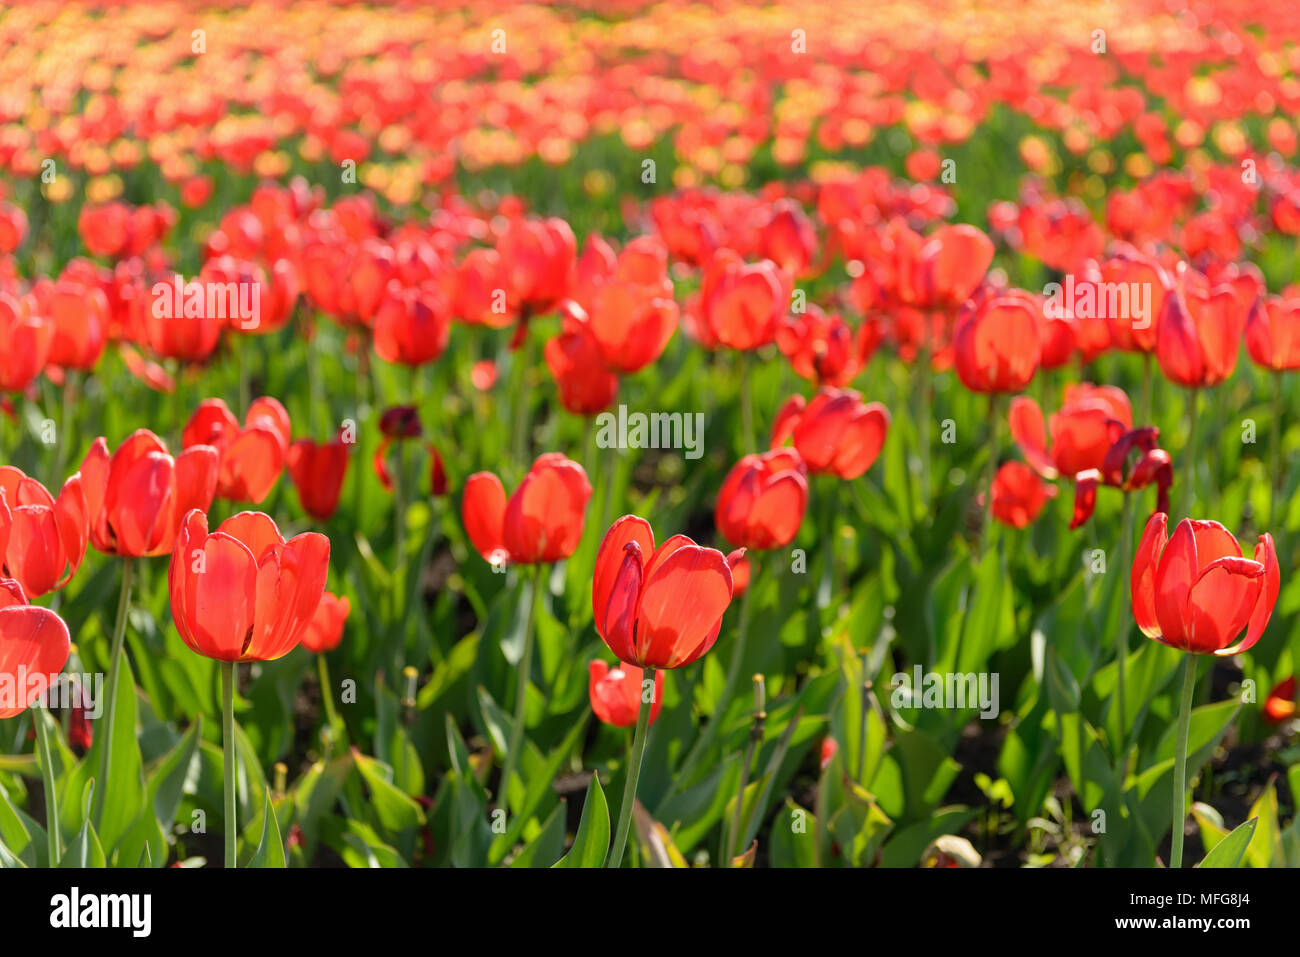 Many spring tulips in the garden - Stock Image